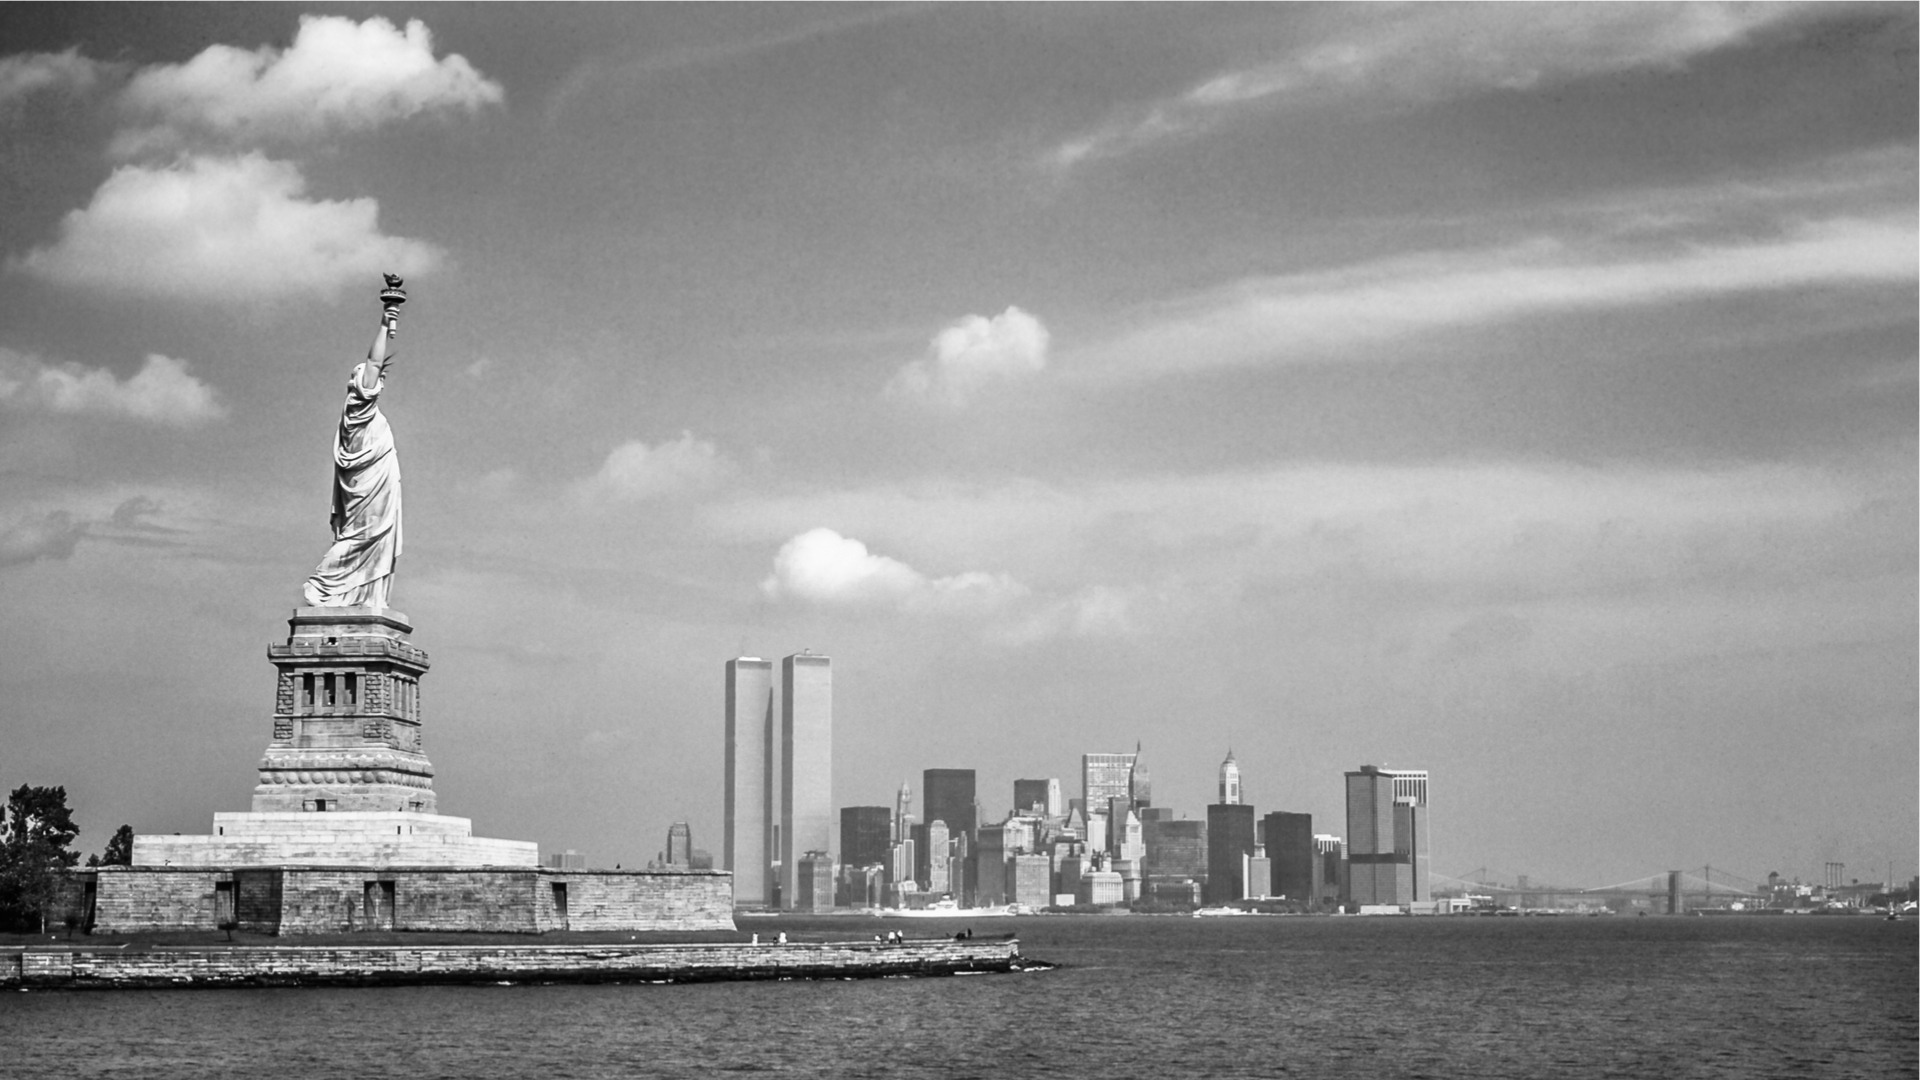 NYC Statue Liberty Skyline Black and White